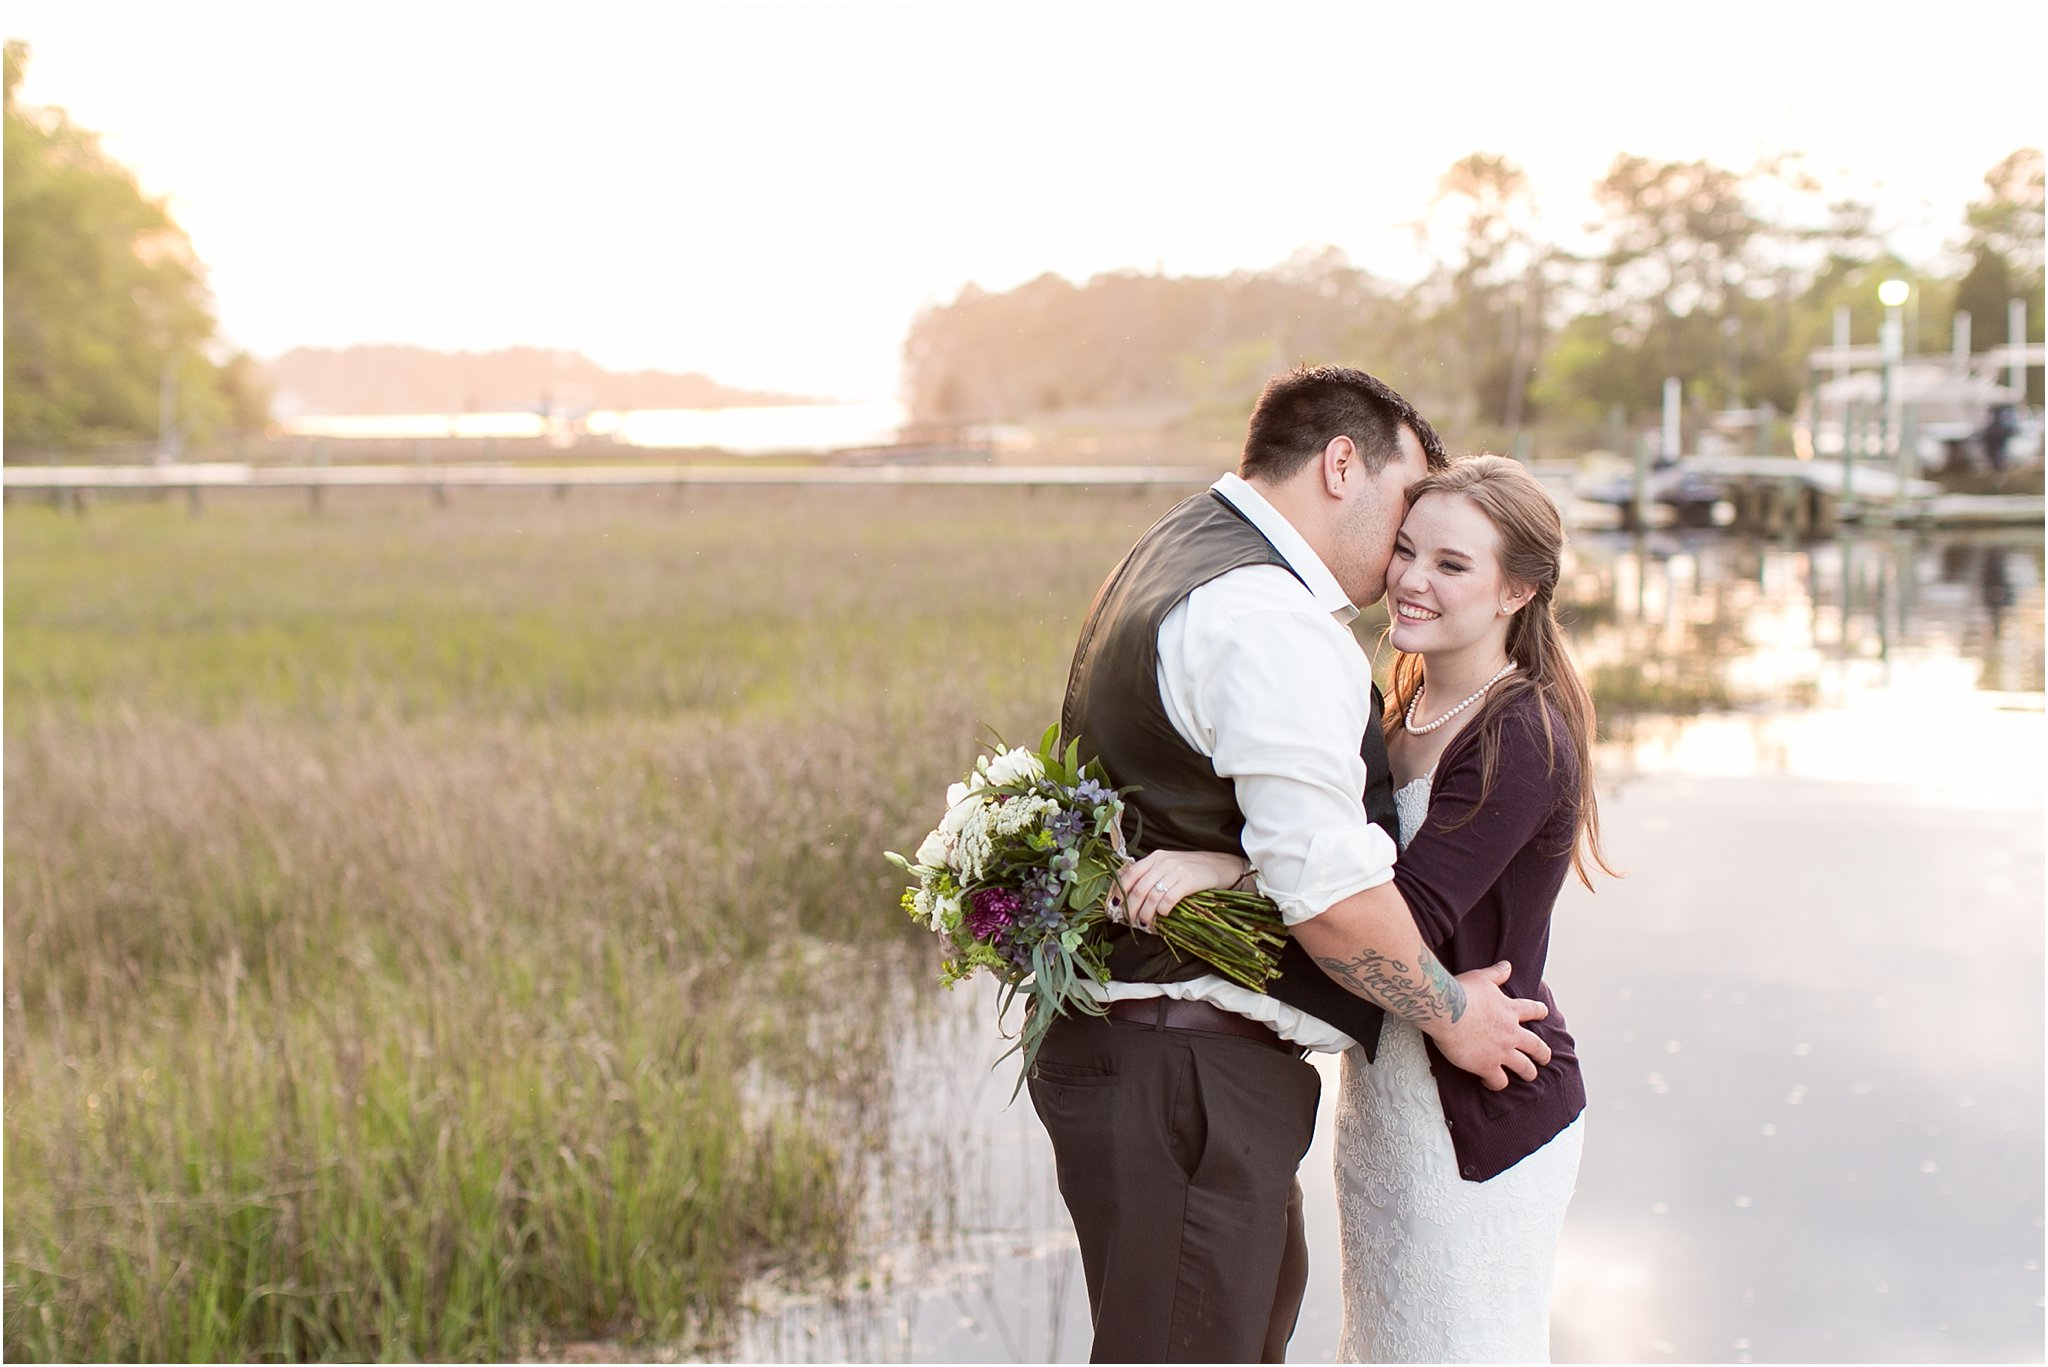 jessica_ryan_photography_virginia_virginiabeachwedding_bayislandvirginiabeach_backyardwedding_waterfrontwedding_intimatewedding_vintagewedding_1614